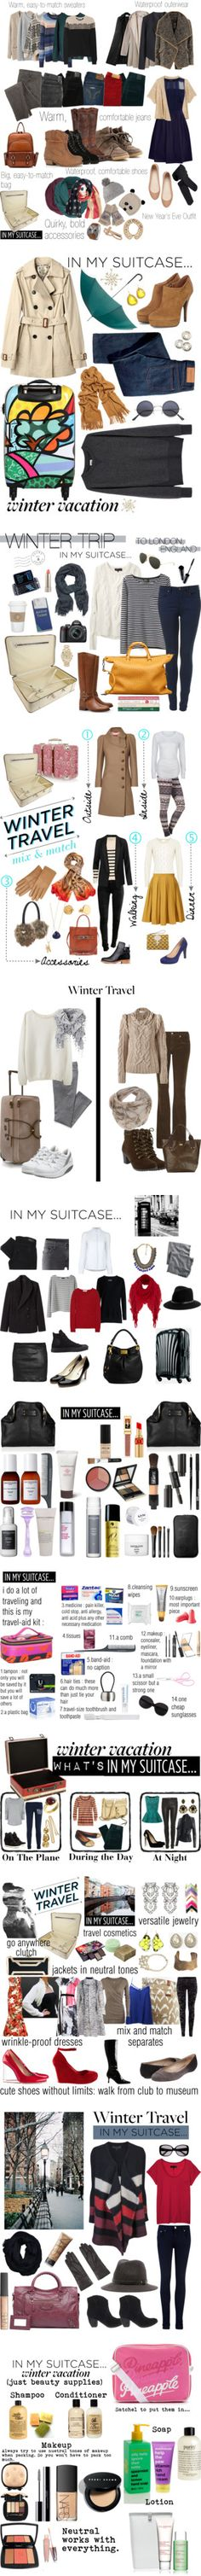 Winter travel packing ideas from Polyvore.